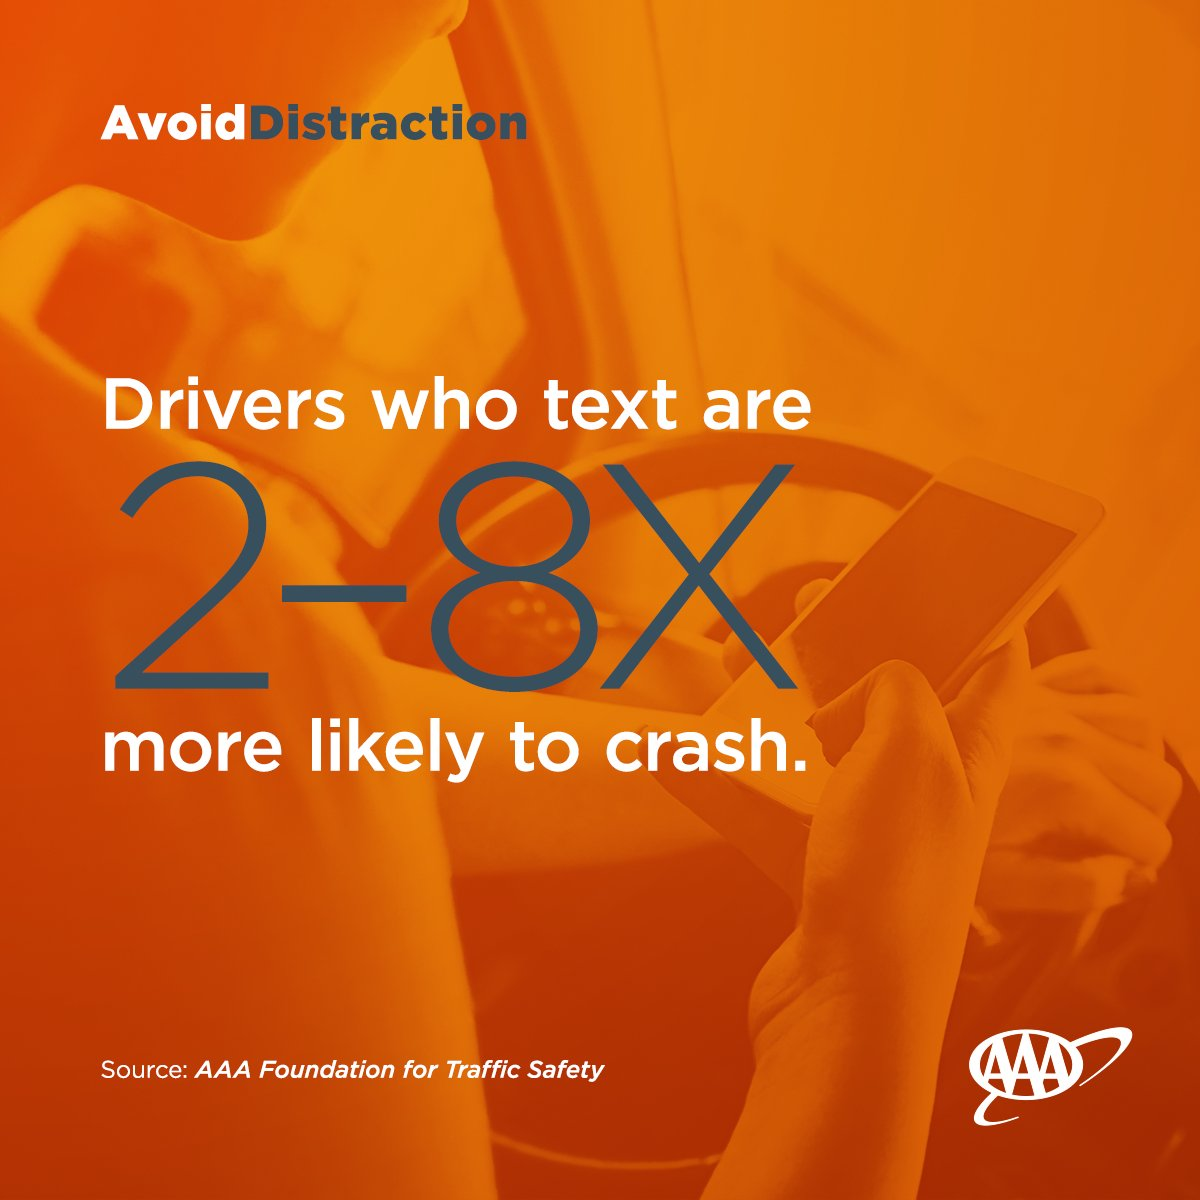 Sending that text could mean a crash. Focus on the road. #BeSafe #DriveSafe #AAA https://t.co/k47ppD3Q0x